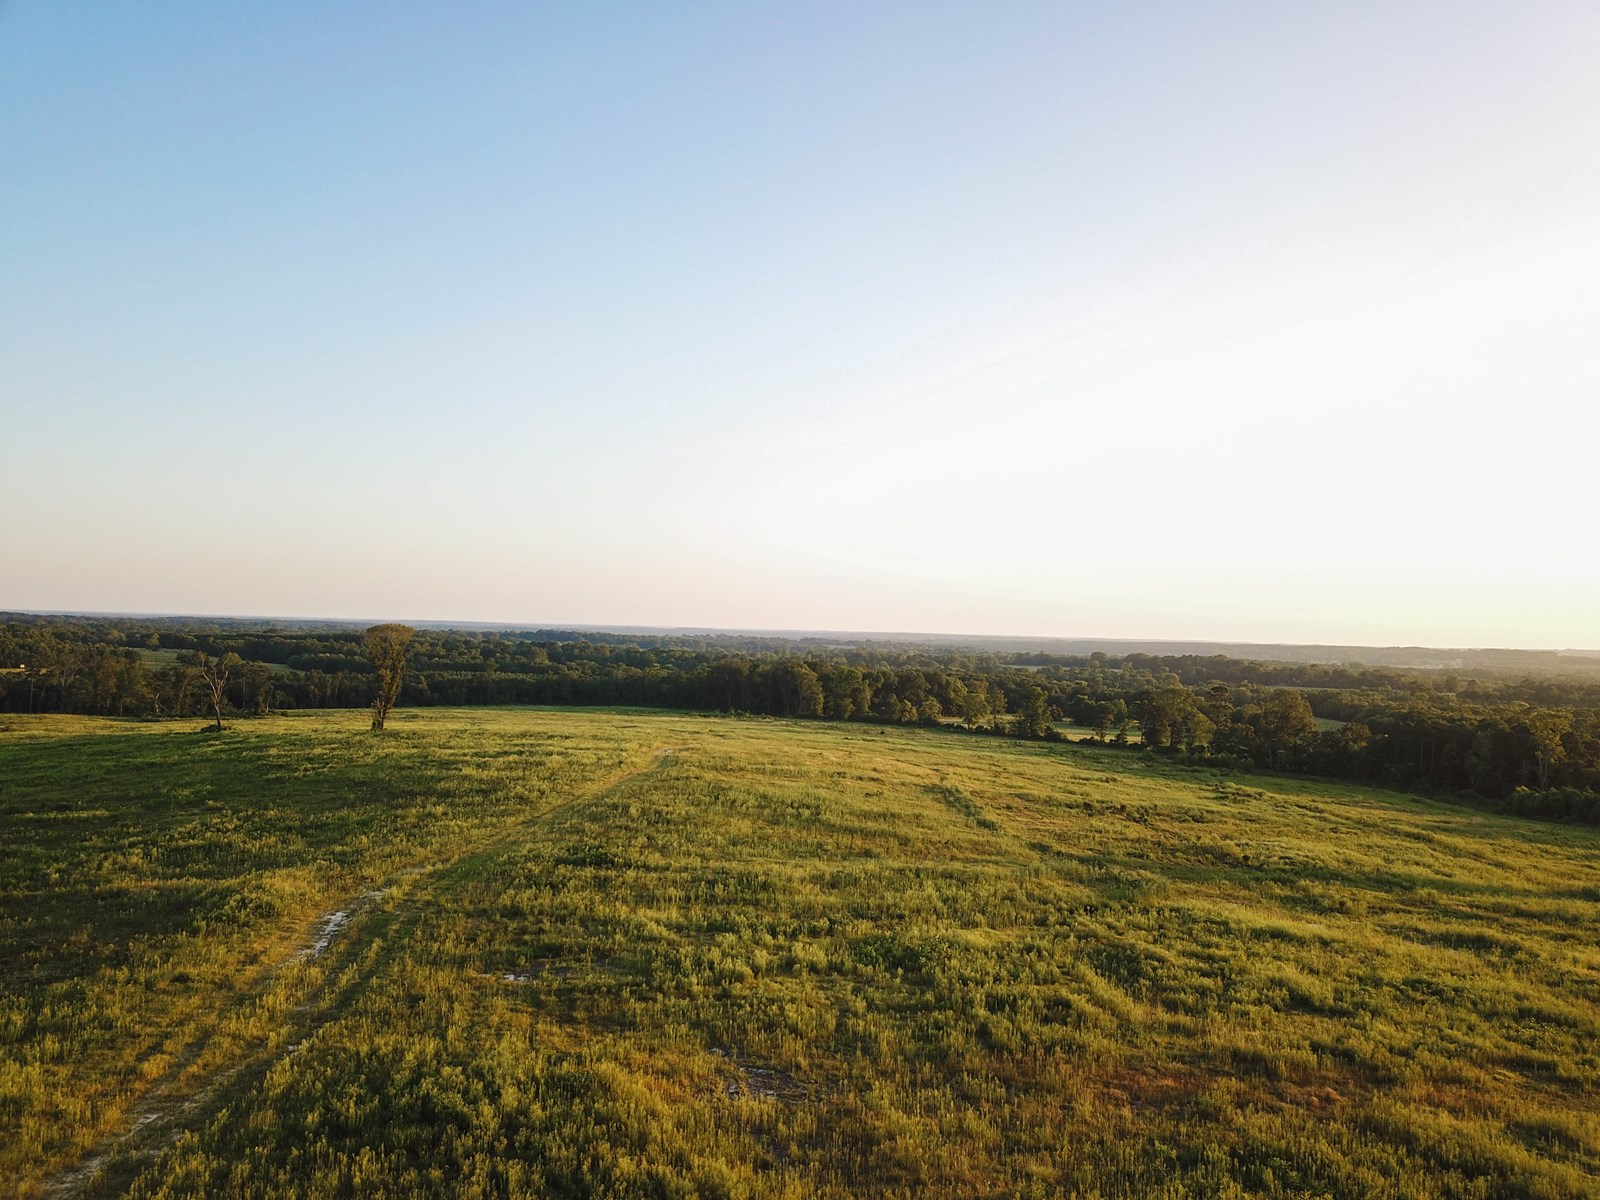 RANCH FOR SALE | STUNNING VIEWS, SPRING FED CREEK, PASTURES